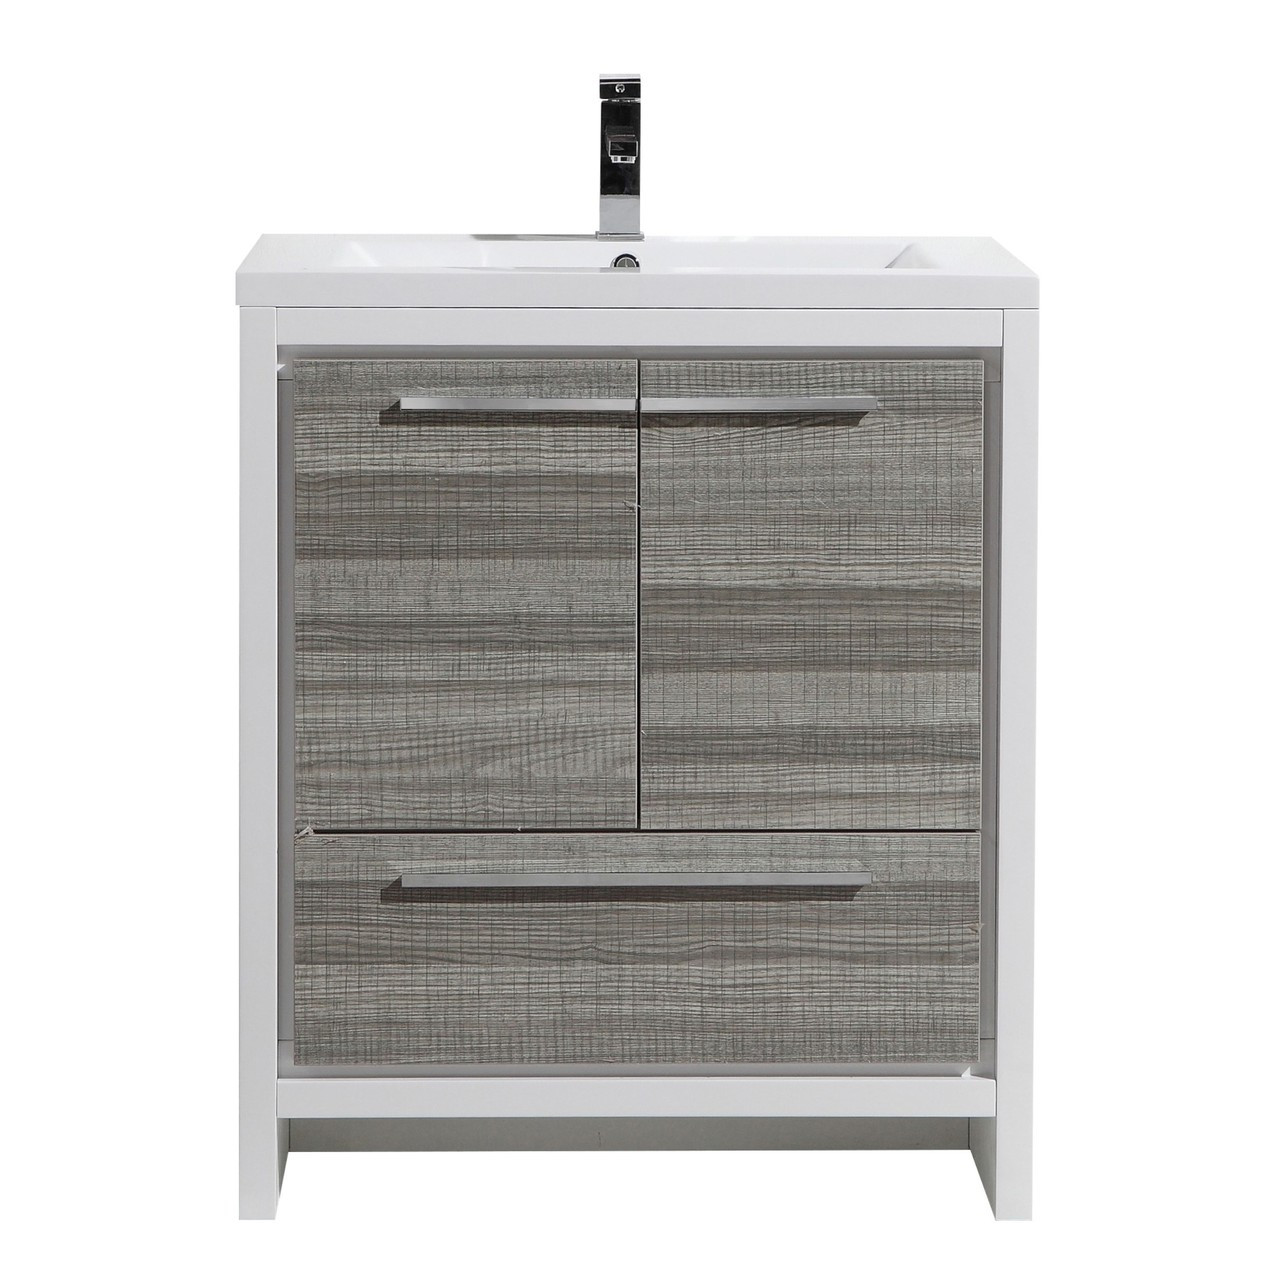 Dolce 30″ Bath Vanity with Single Reinforced Acrylic Sink